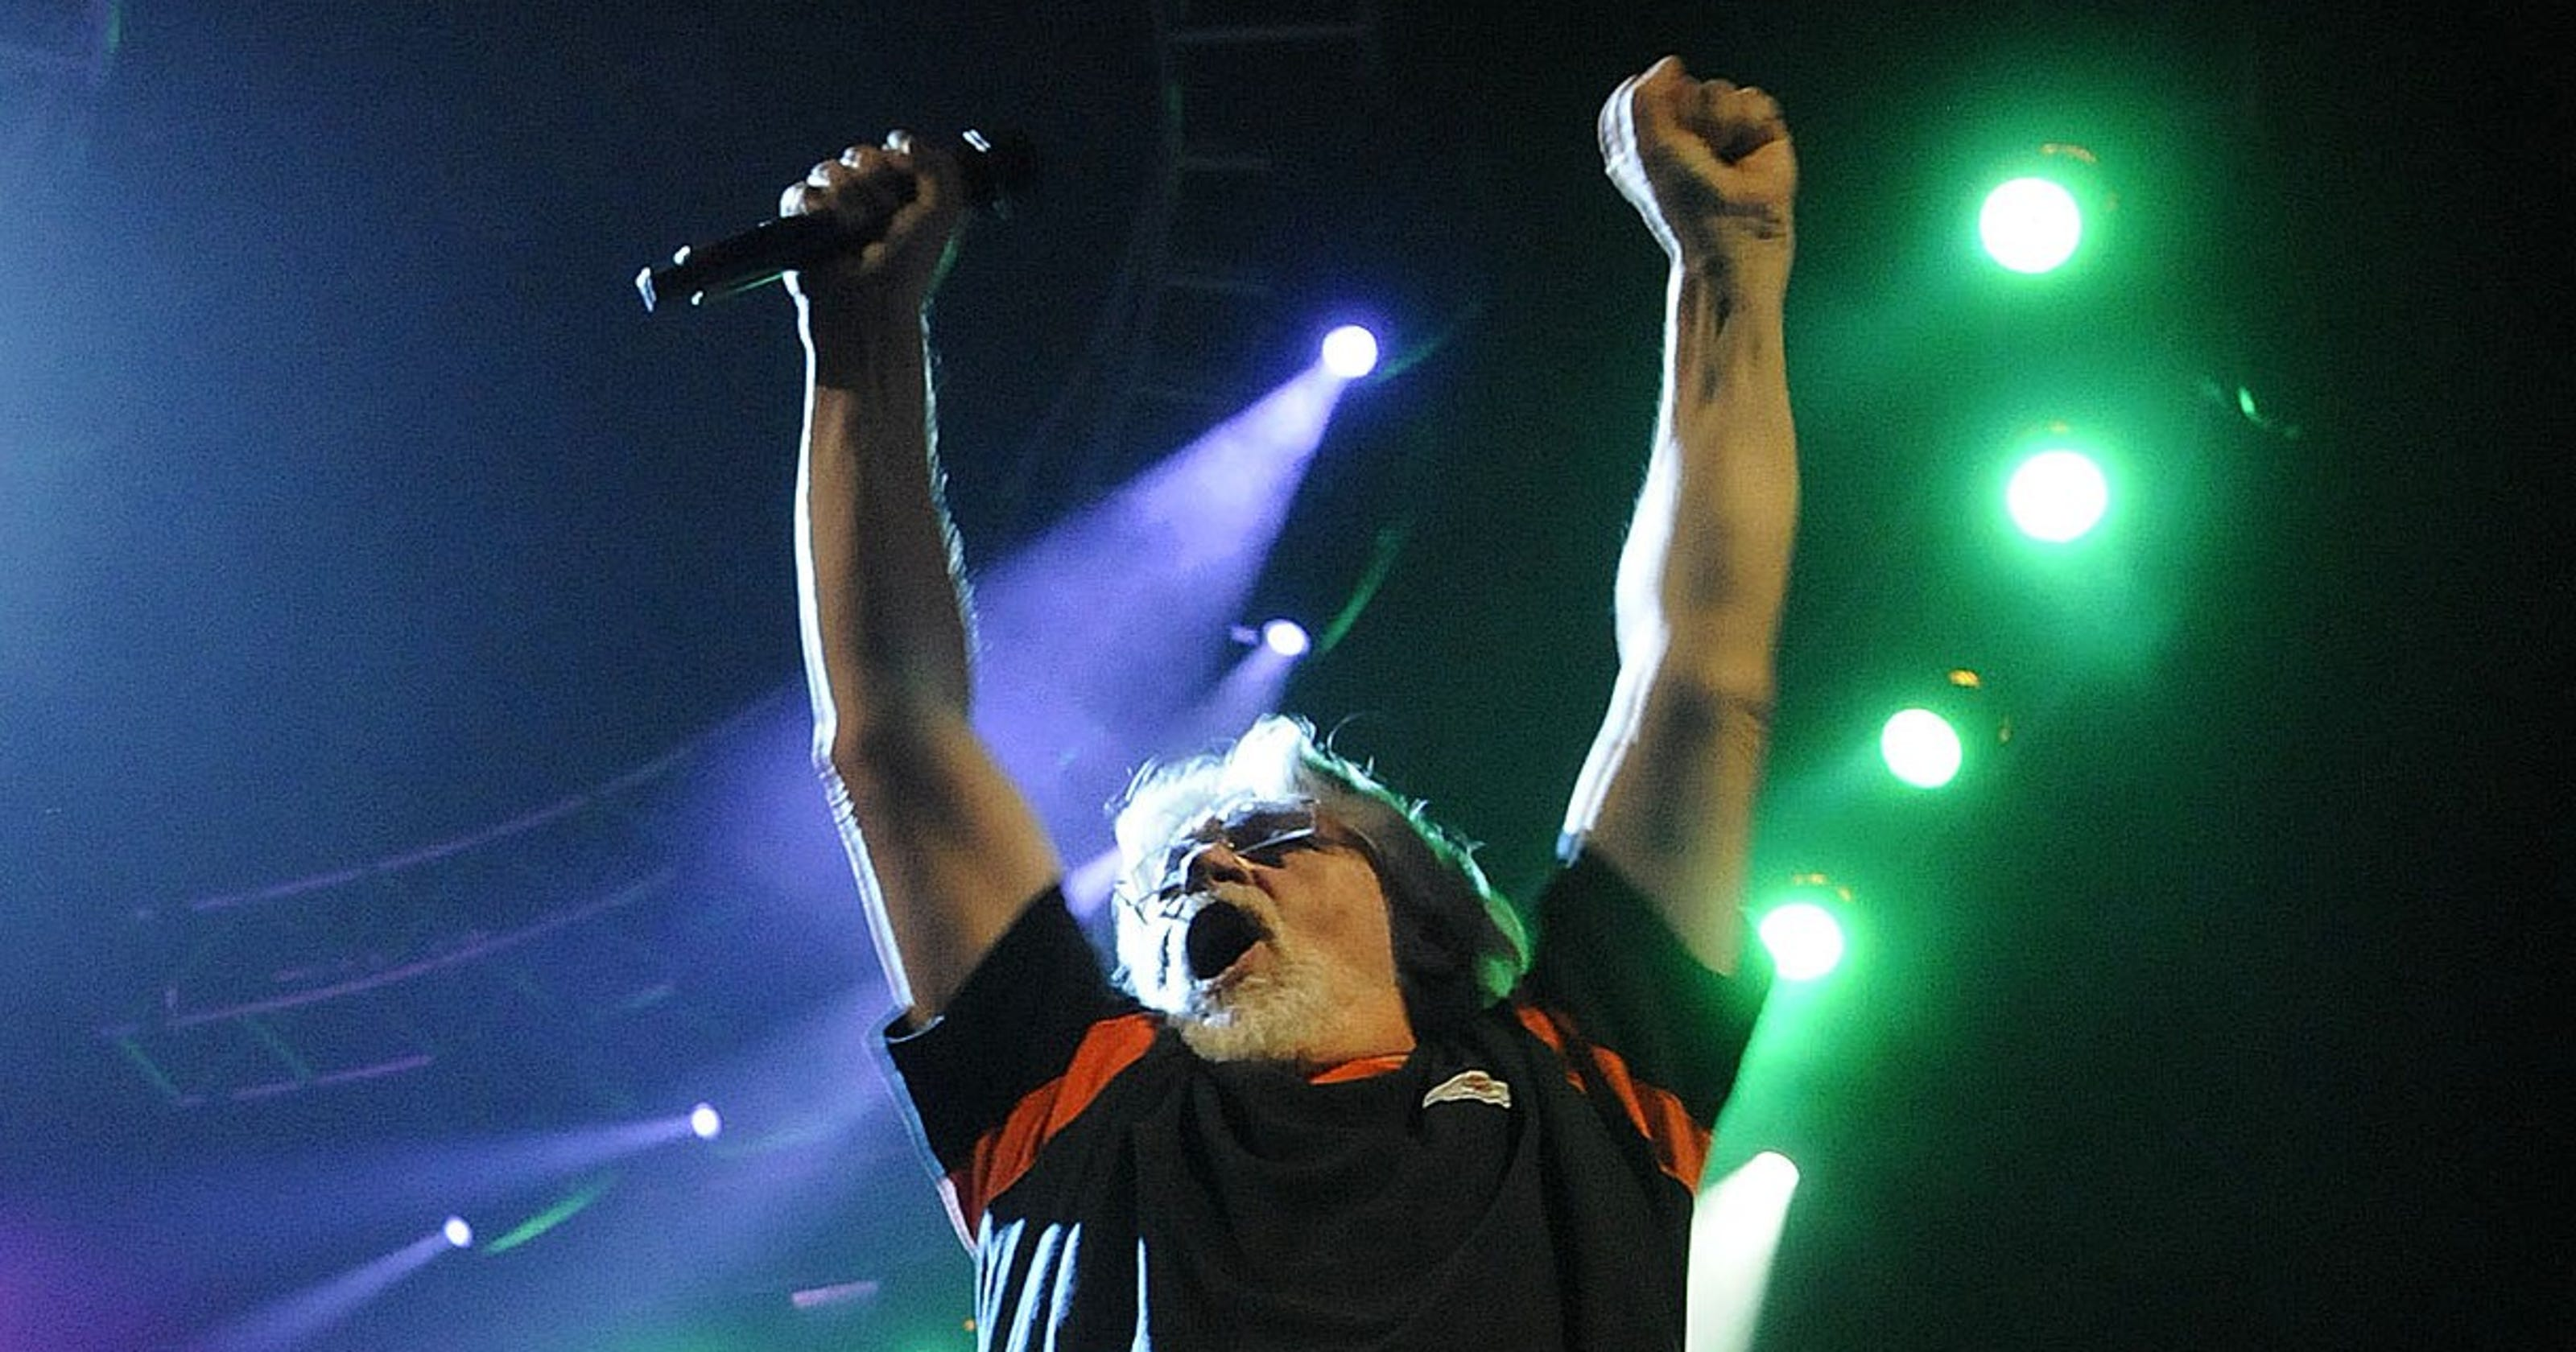 Bob Seger Sets A New Date For Bankers Life Fieldhouse